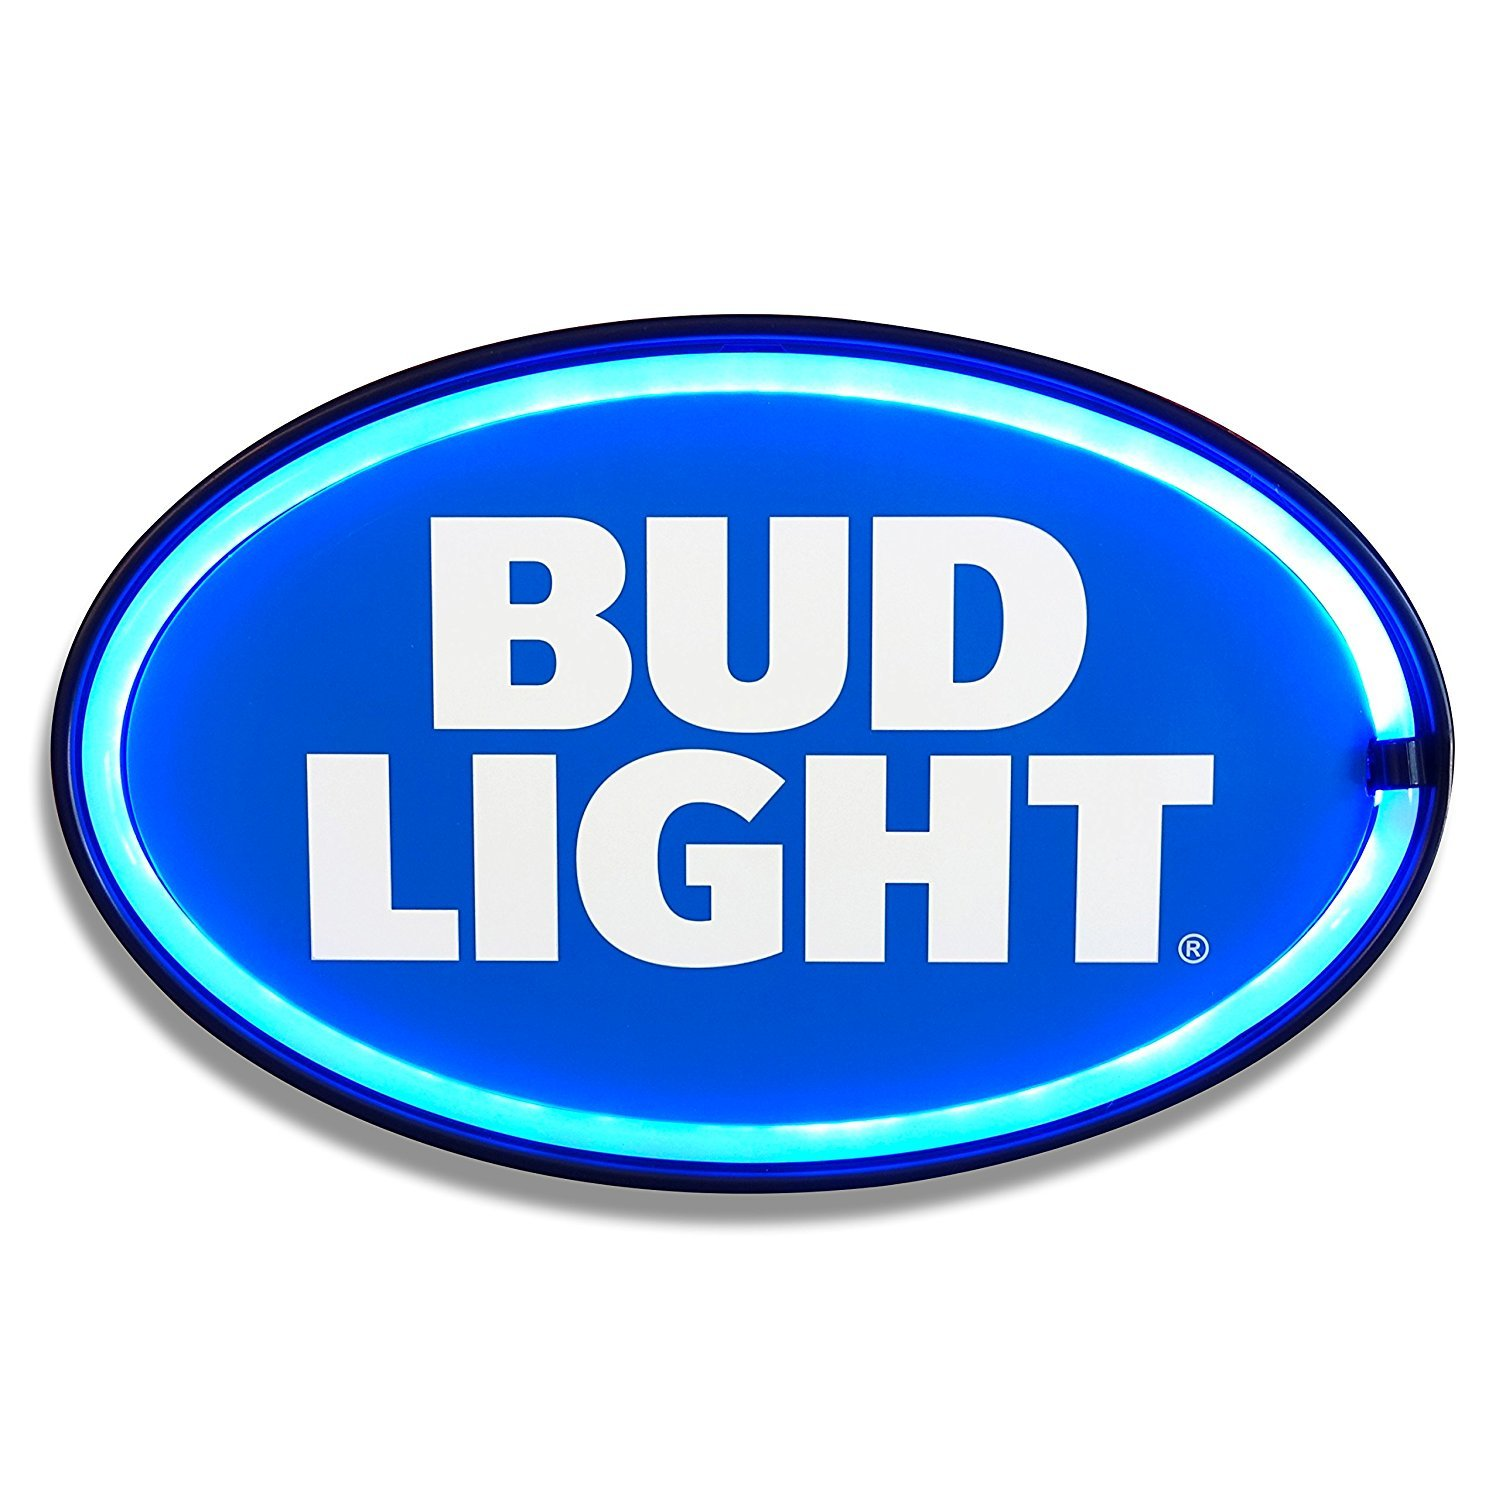 New and Improved! Now with Wall Plug and 6 cord! Bud Light LED Sign, 16 Oval Shaped Sign, LED Light Rope That Looks Like Neon, Wall Decor For Man Cave, Garage, Bar